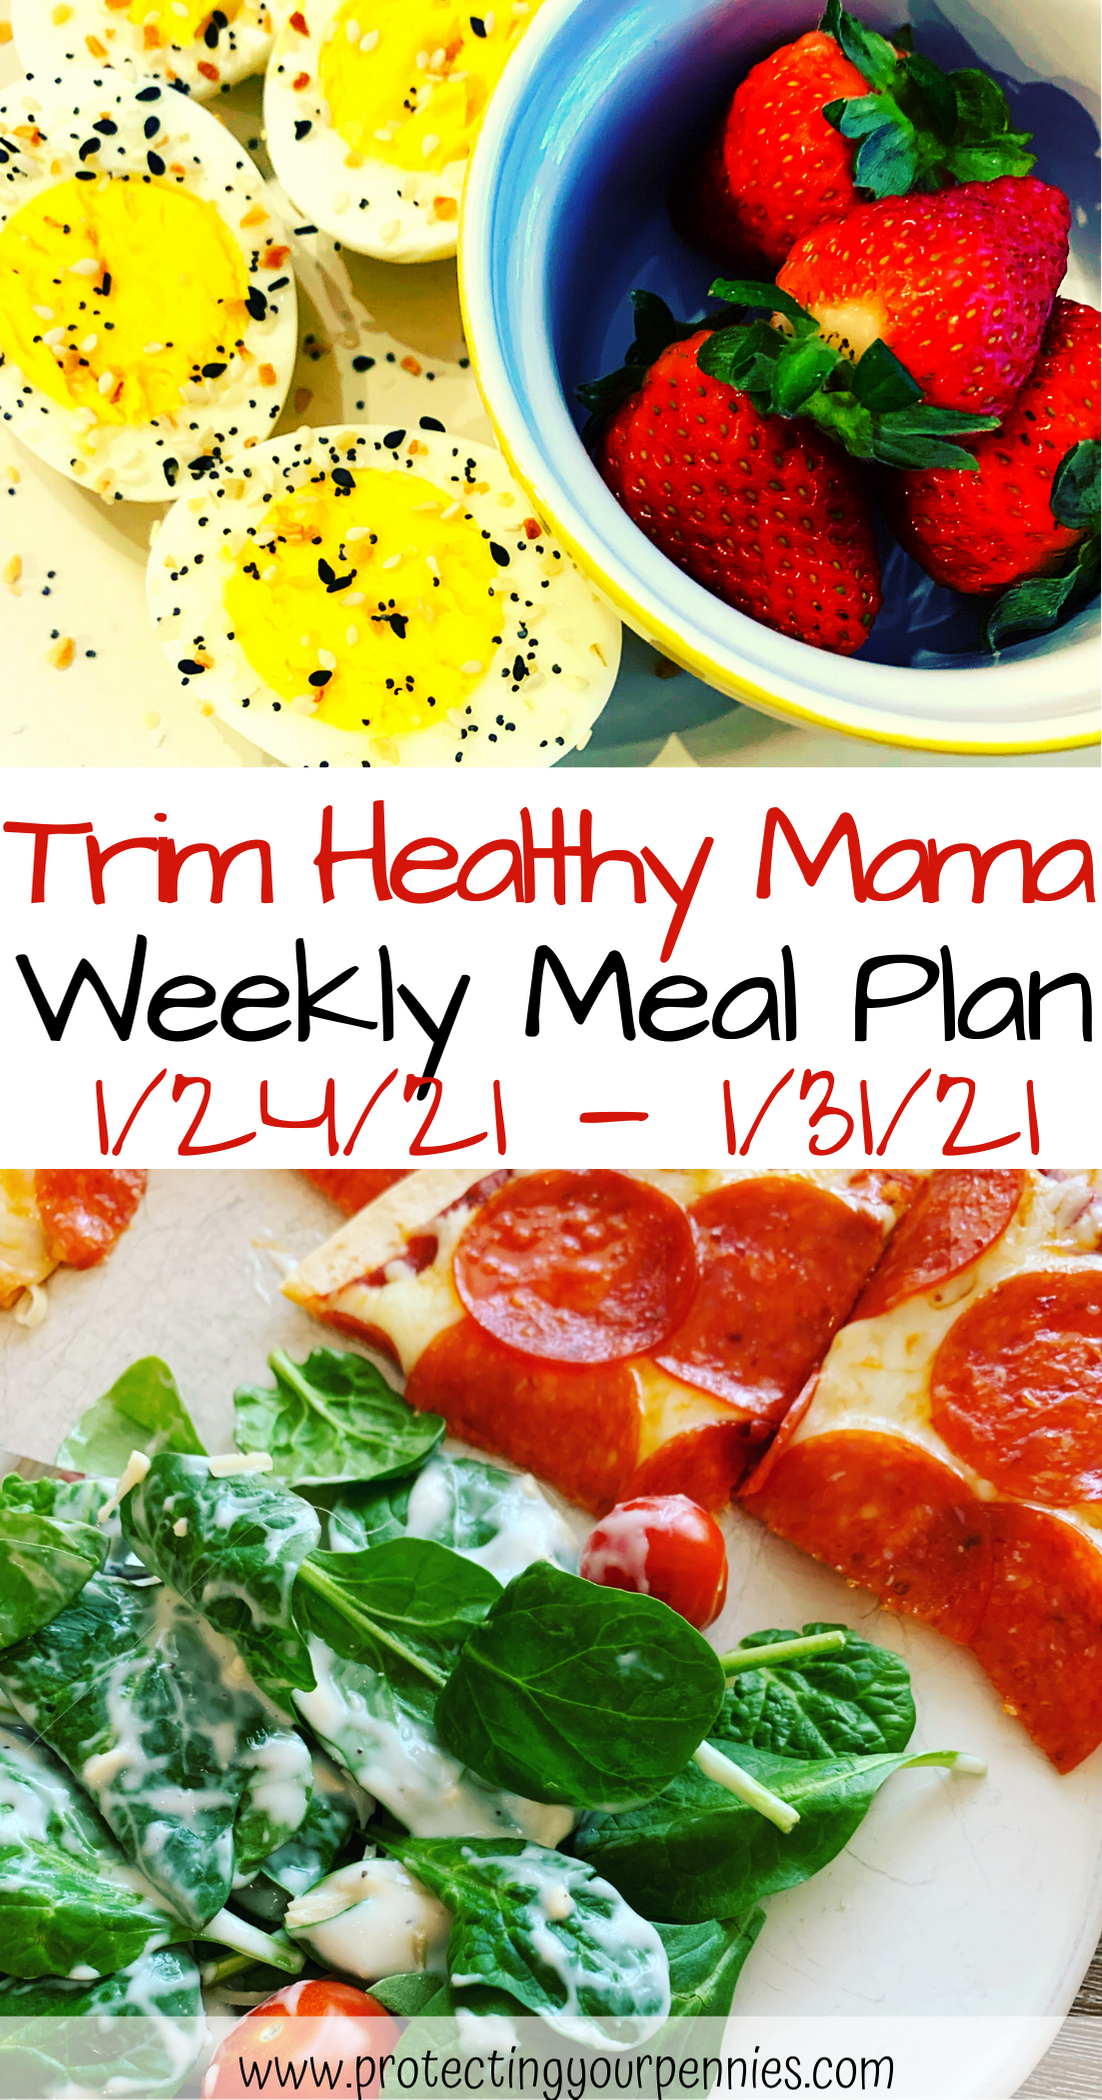 1-24-21 - 1-31-21 THM Weekly Meal Plan (1)